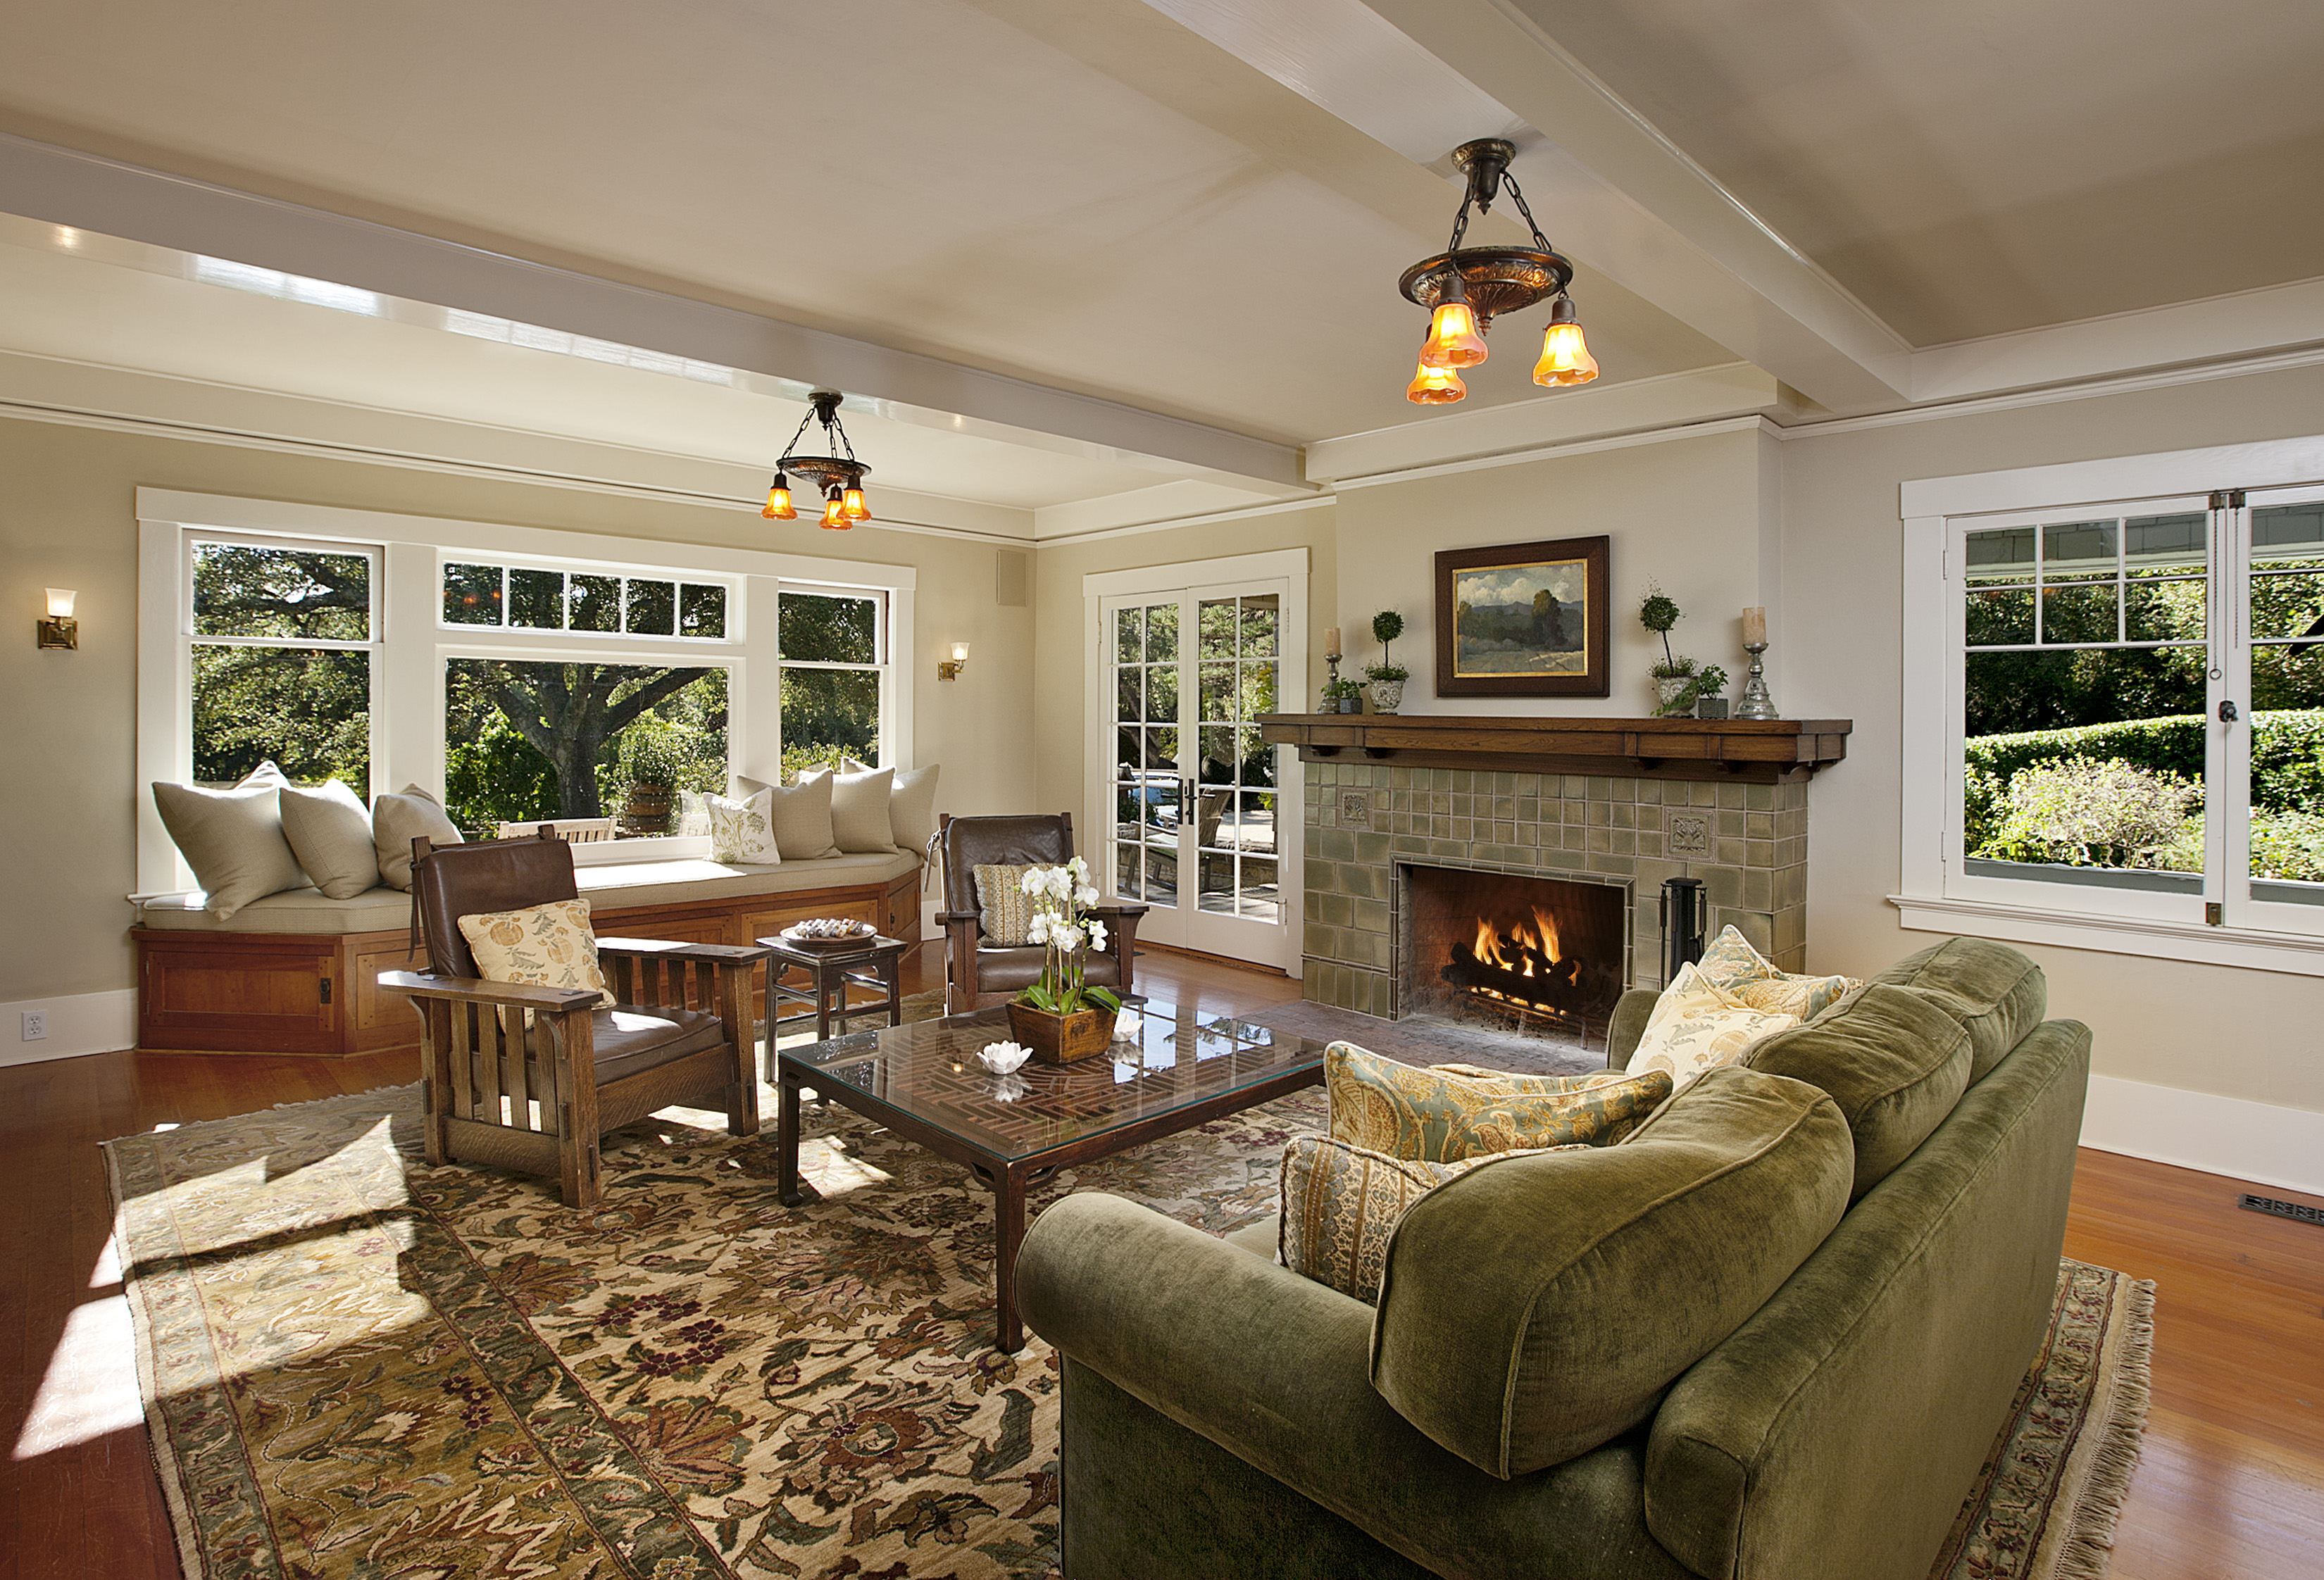 Popular home styles for 2012 montecito real estate for Home interior styles